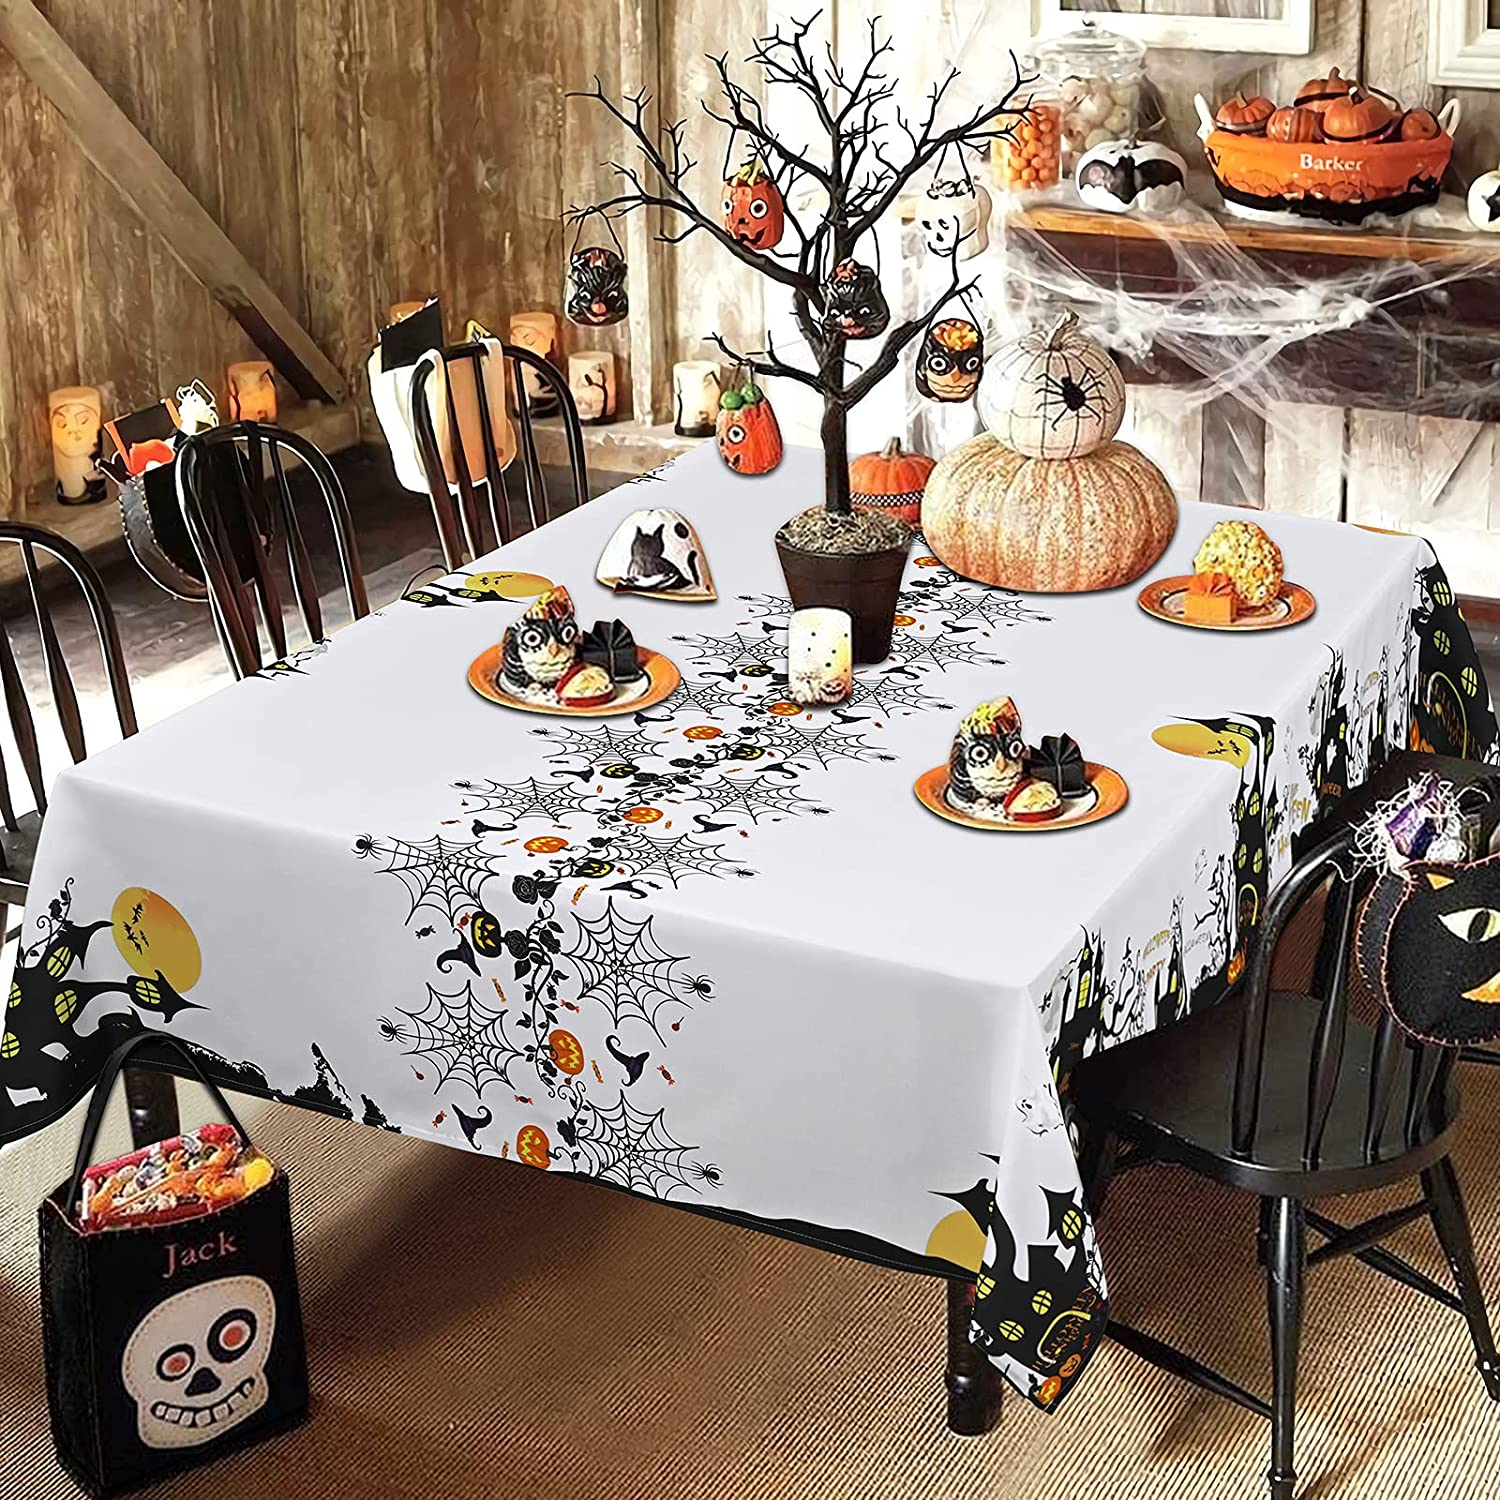 Halloween Tablecloth, Spider Web and Haunted House Town Table Cloth, Scary Pumpkin Cobweb Tablecloths, Waterproof Spill proof Table cover for Dinner Party Decoration, Black White, Square